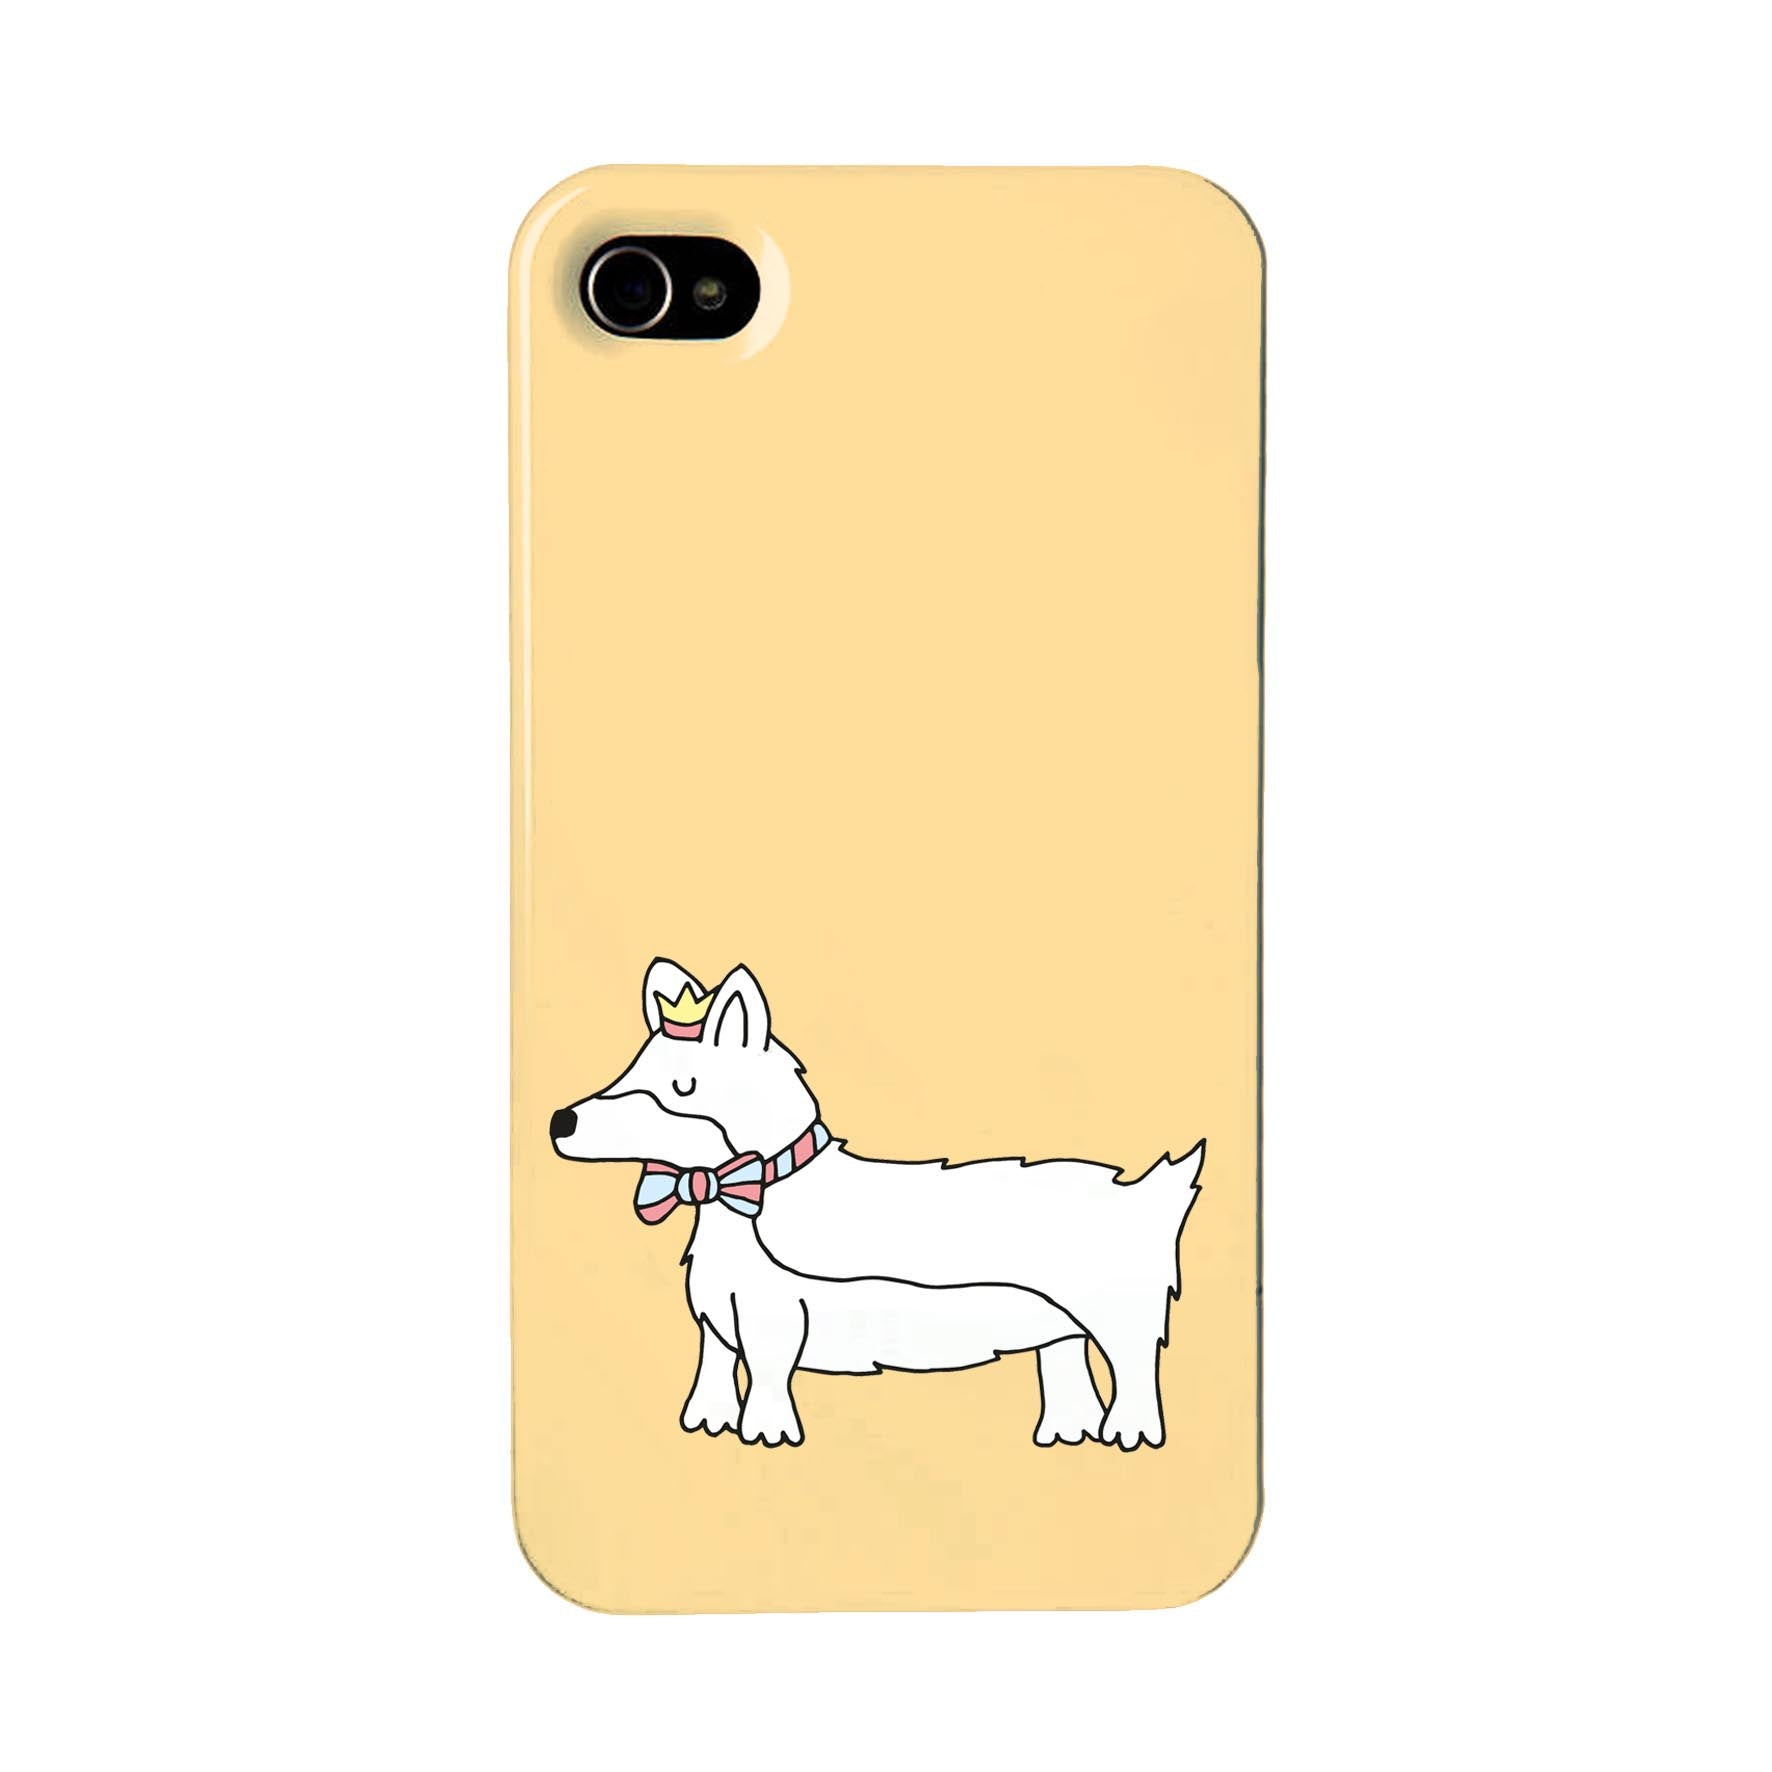 Orange phone case with an illustration of a corgi